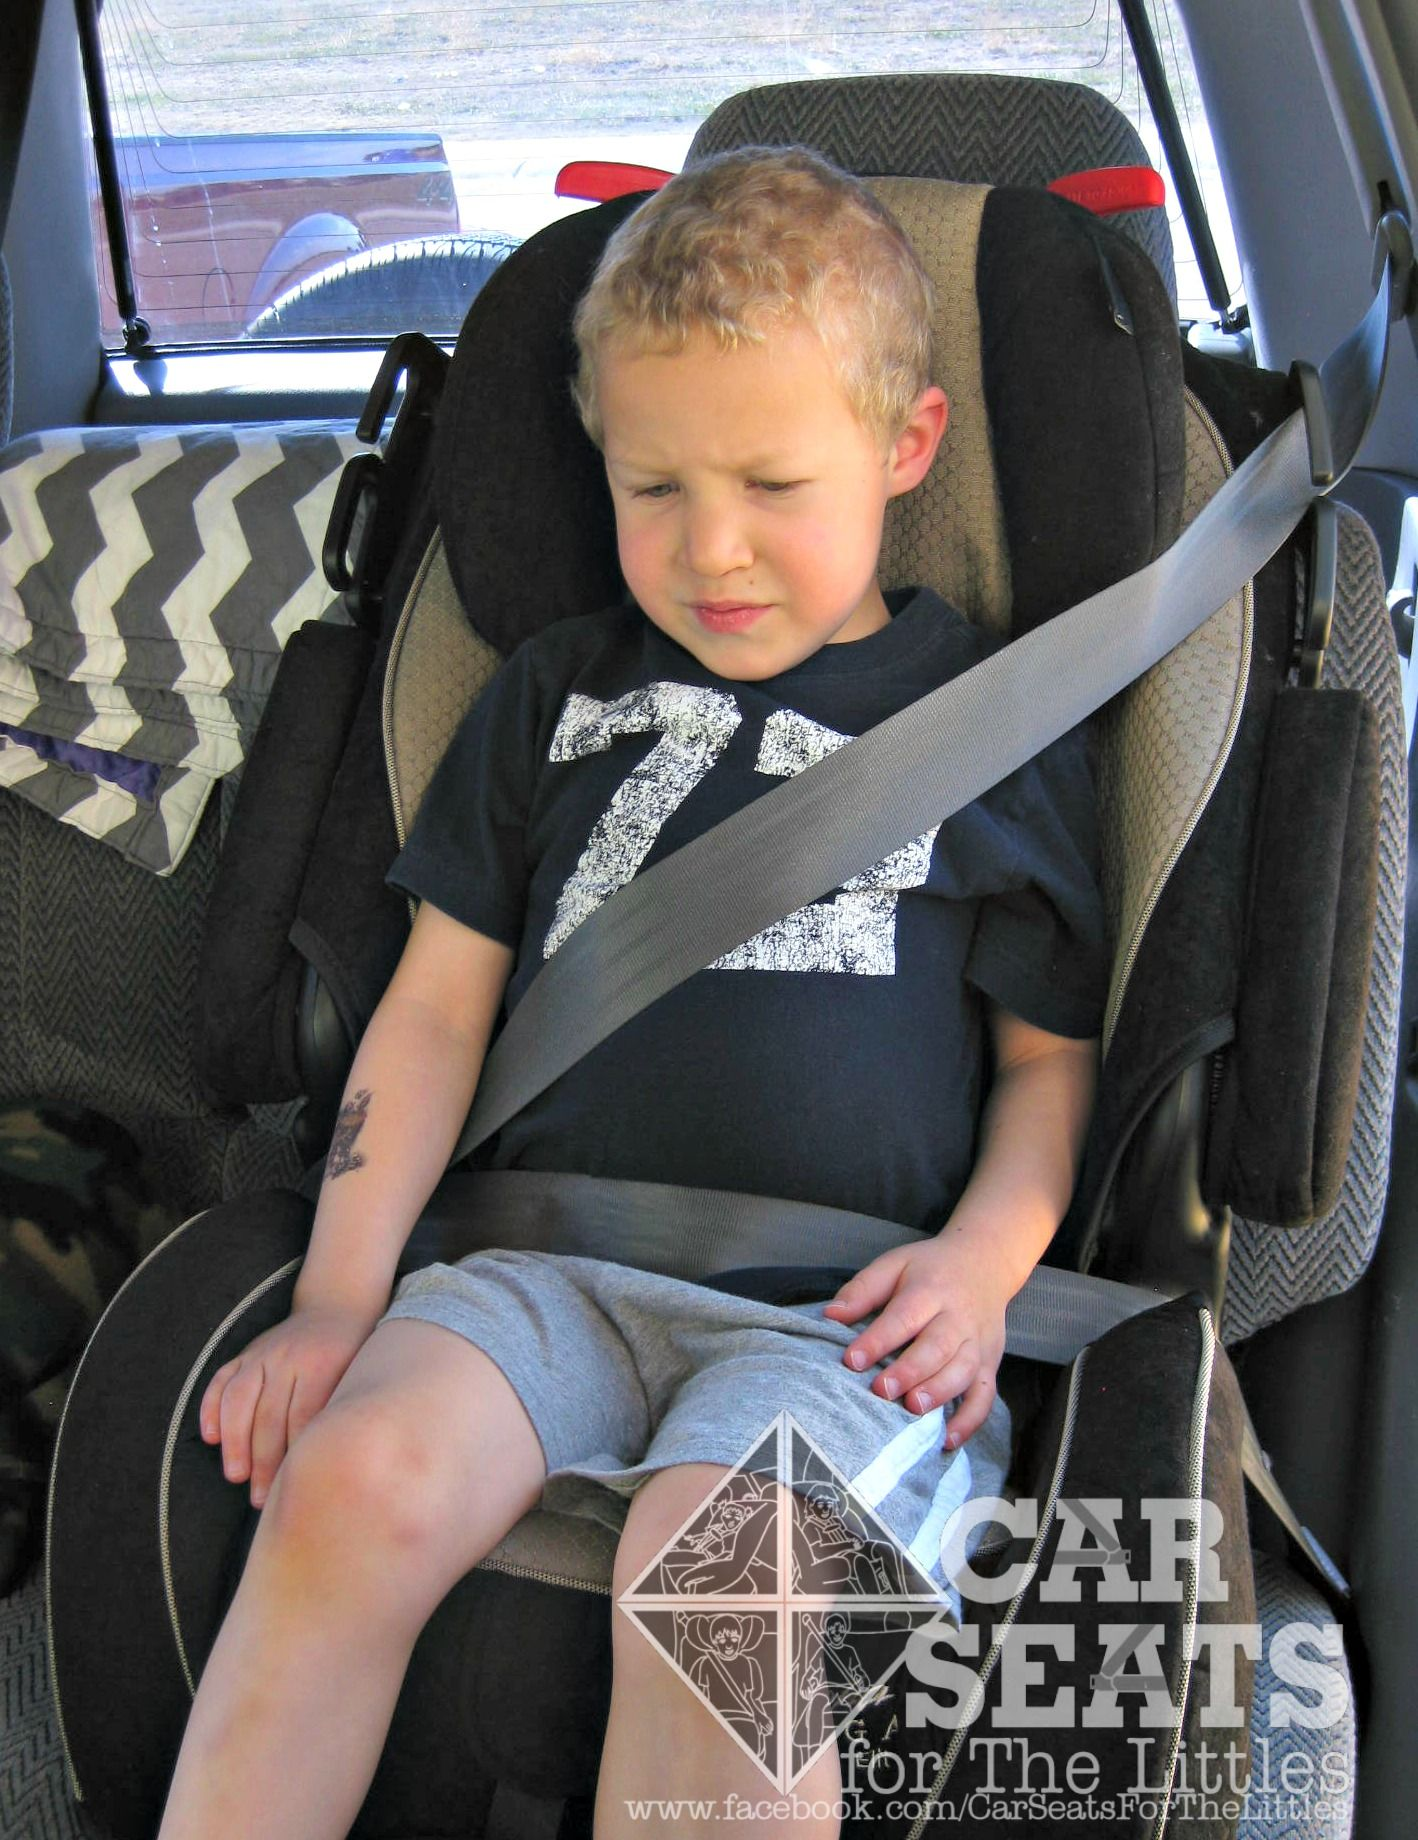 The Alpha Omega Why It S Neither The First Nor The Last Nor The Elite Car Seat Most Importantly Why You S Car Seats Child Passenger Safety Carseat Safety